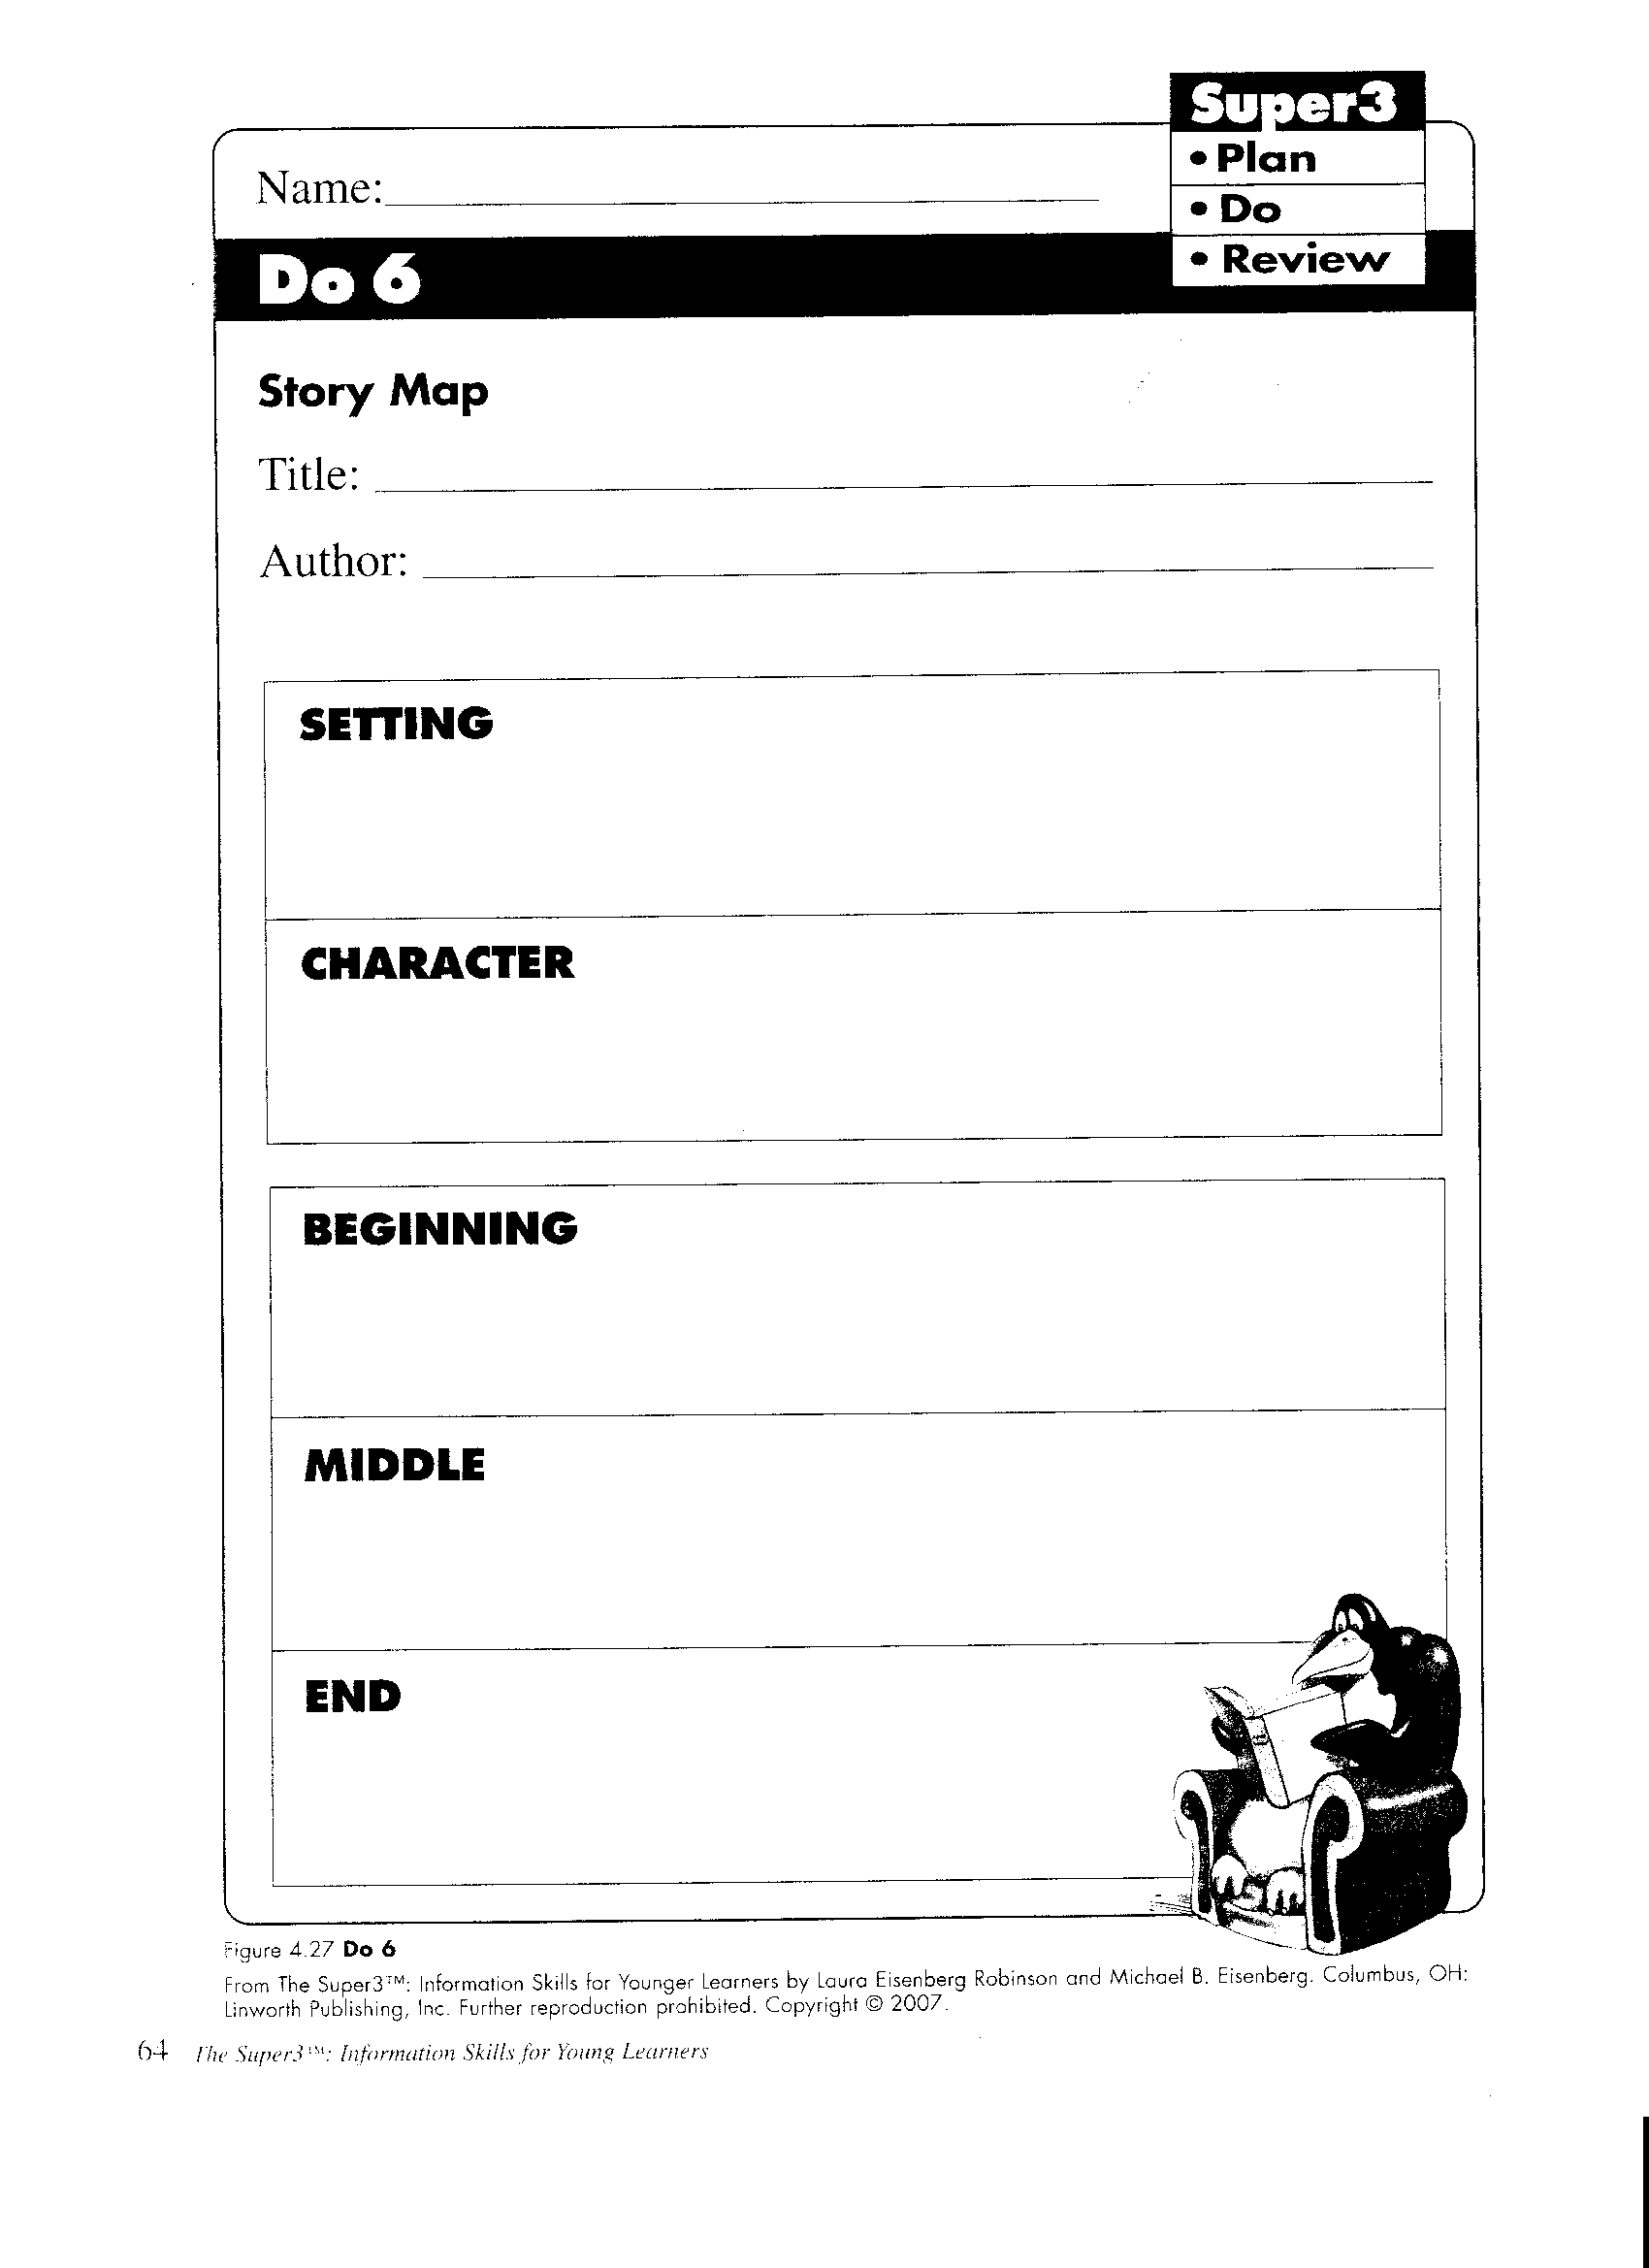 narrative essay lesson plan middle school Creative writing, creativity, fiction, narrative, brainstorming, visioning,  introspection  lesson plan  determine as a class what form it will take (essay,  story, etc).